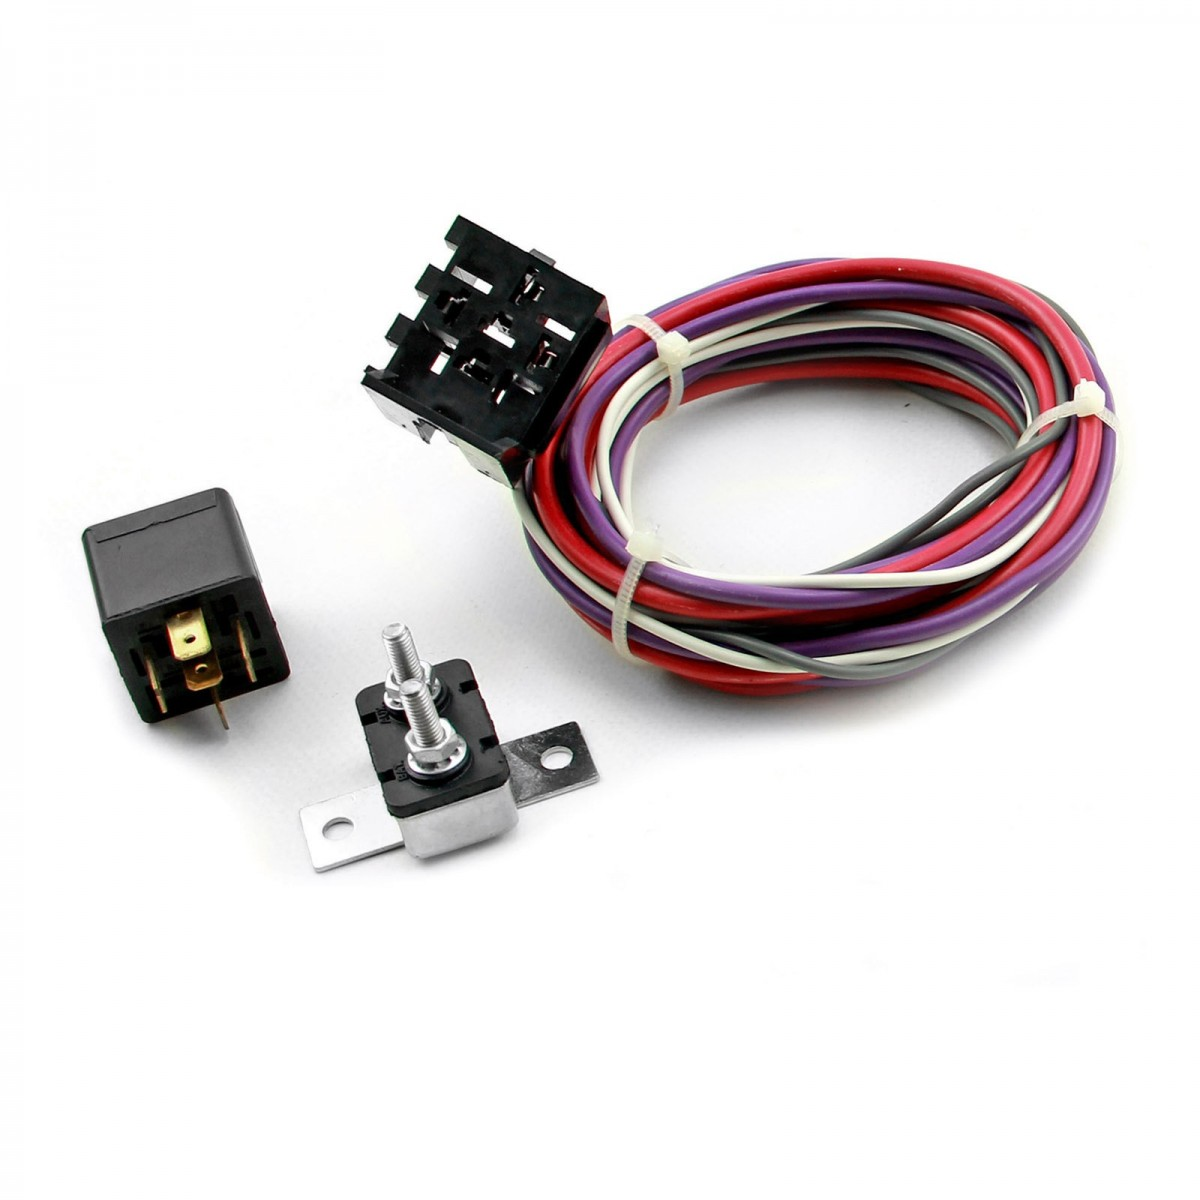 Wiring Harness Making Supplies : Electric fan wiring harness kit w relay